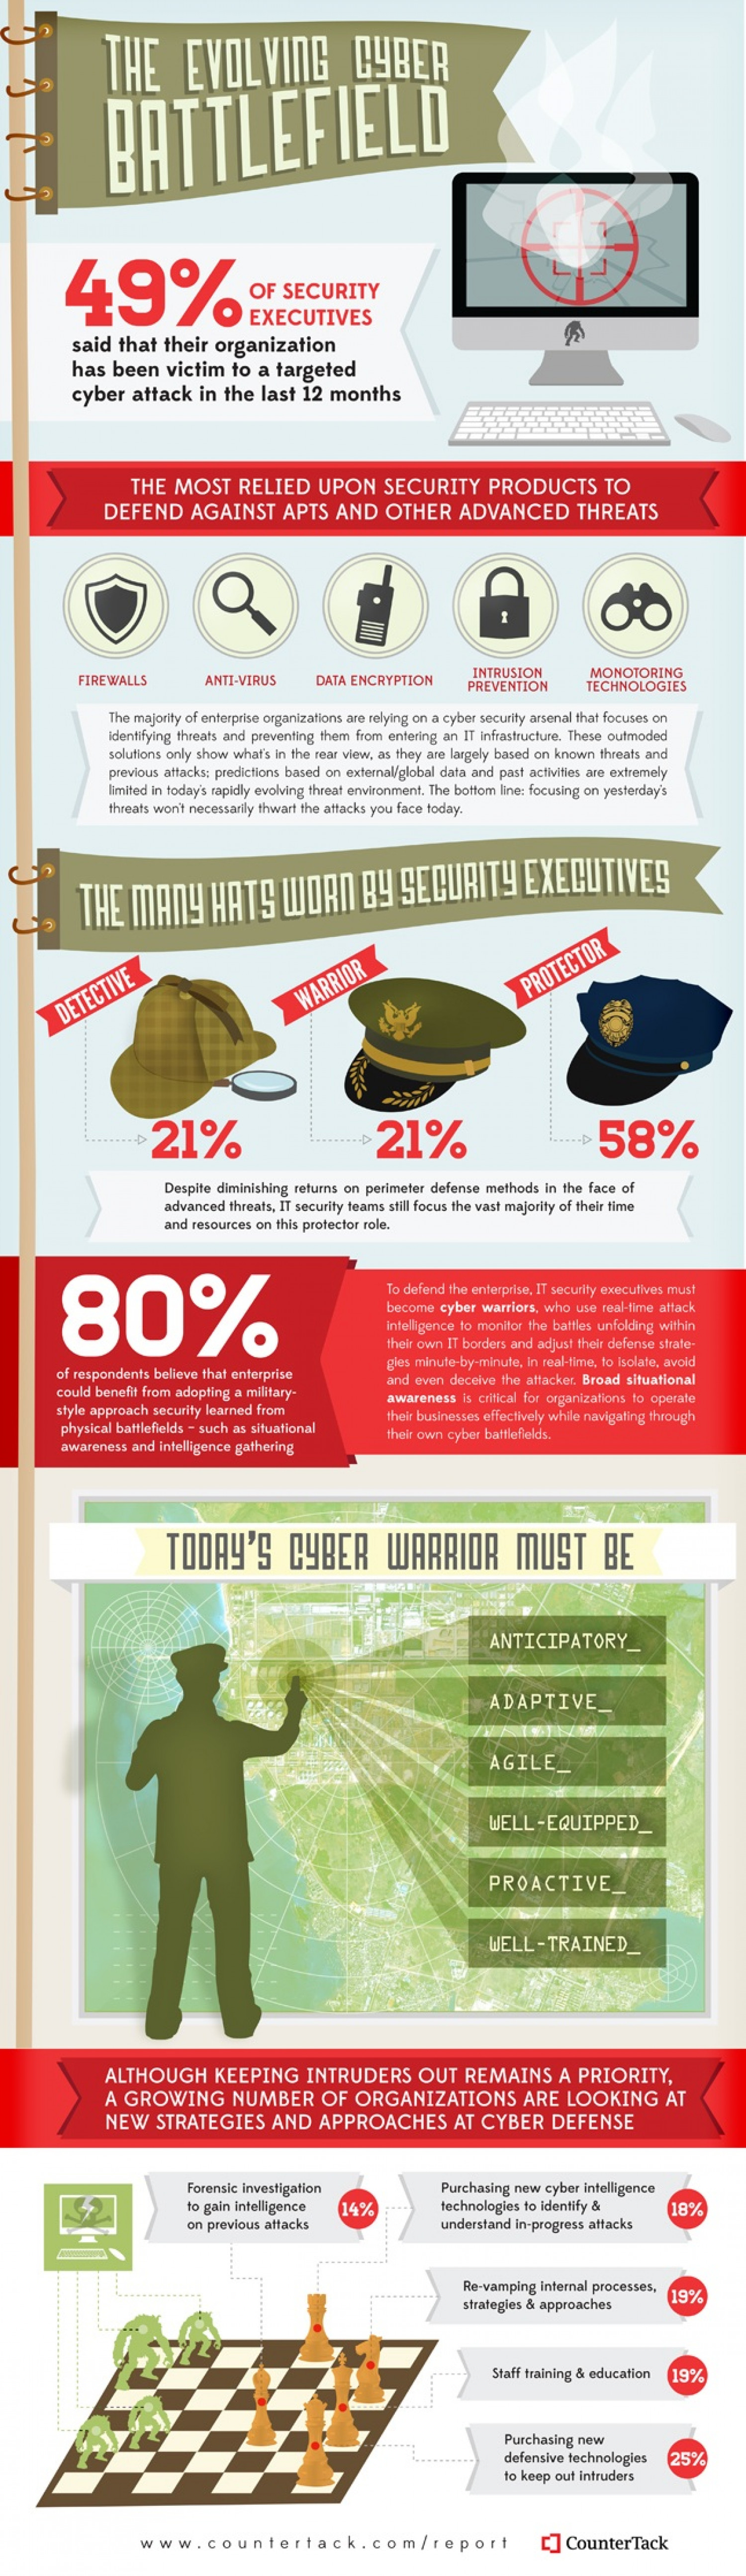 The Evolving Cyber Battlefield Infographic